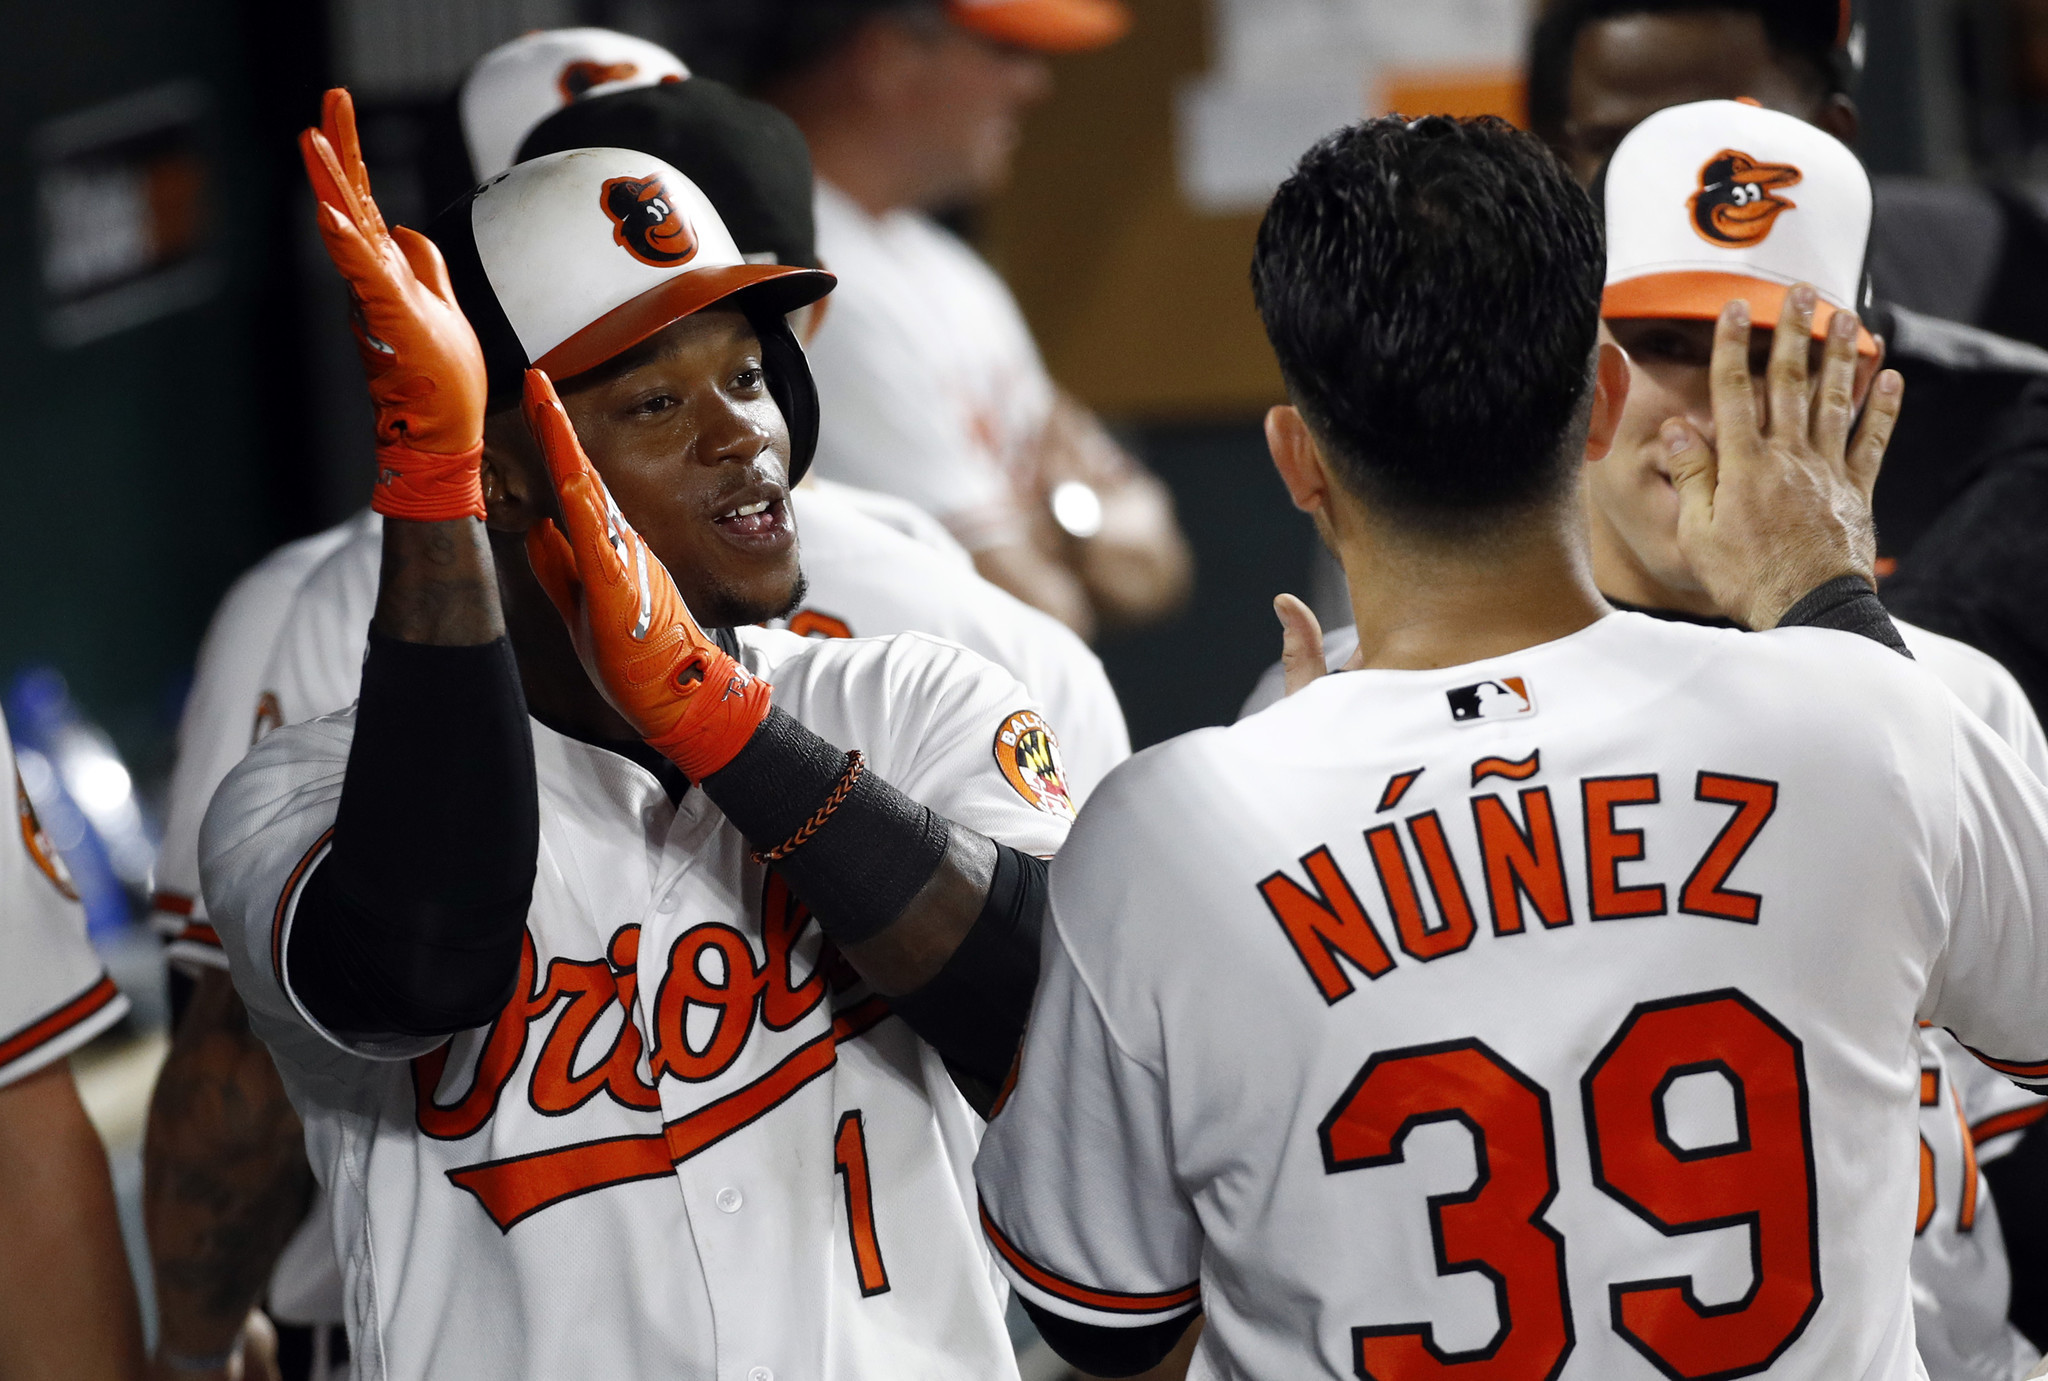 Bal-orioles-rewind-looking-back-at-tuesday-night-s-6-3-win-over-the-mets-20180814